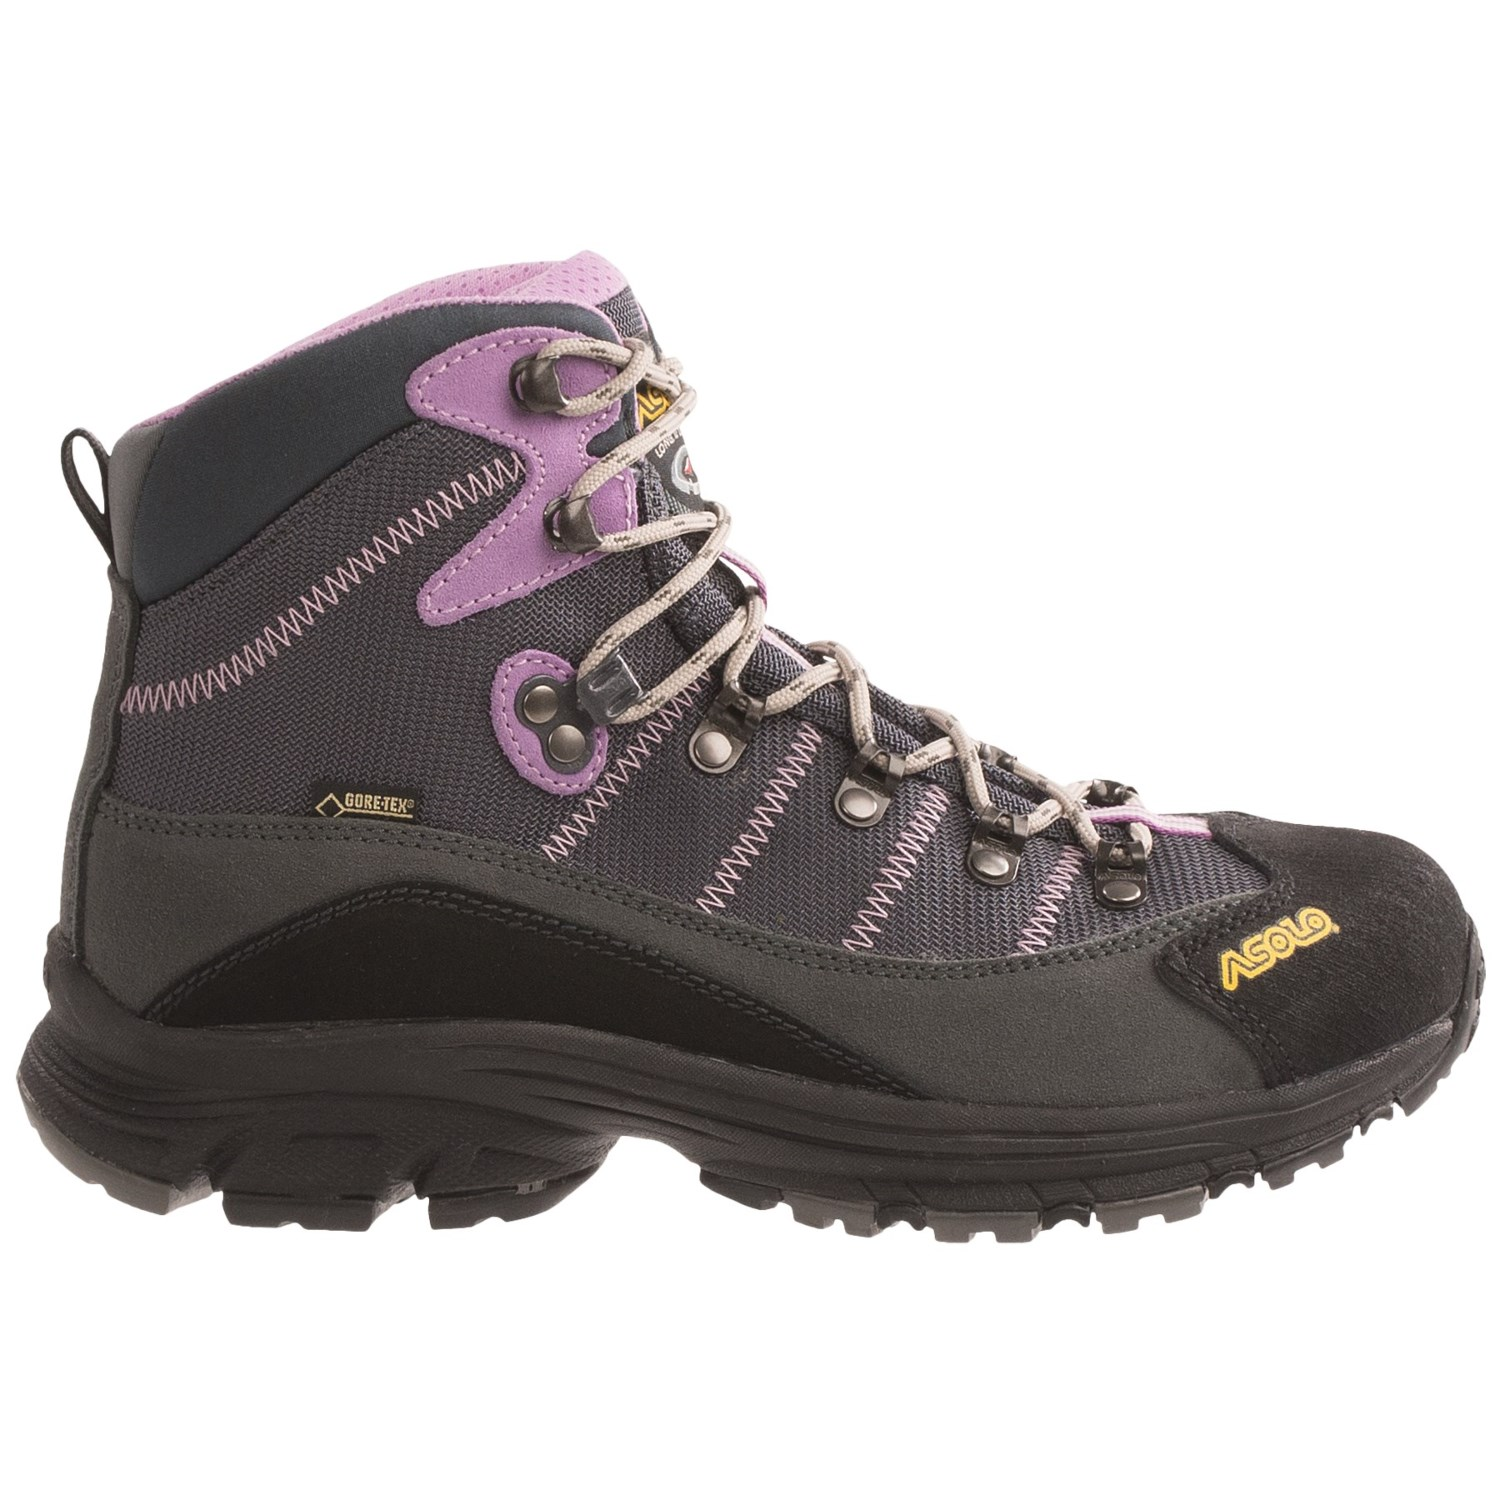 Model Details About ASOLO Stynger GORETEX Hiking Boots Women39s